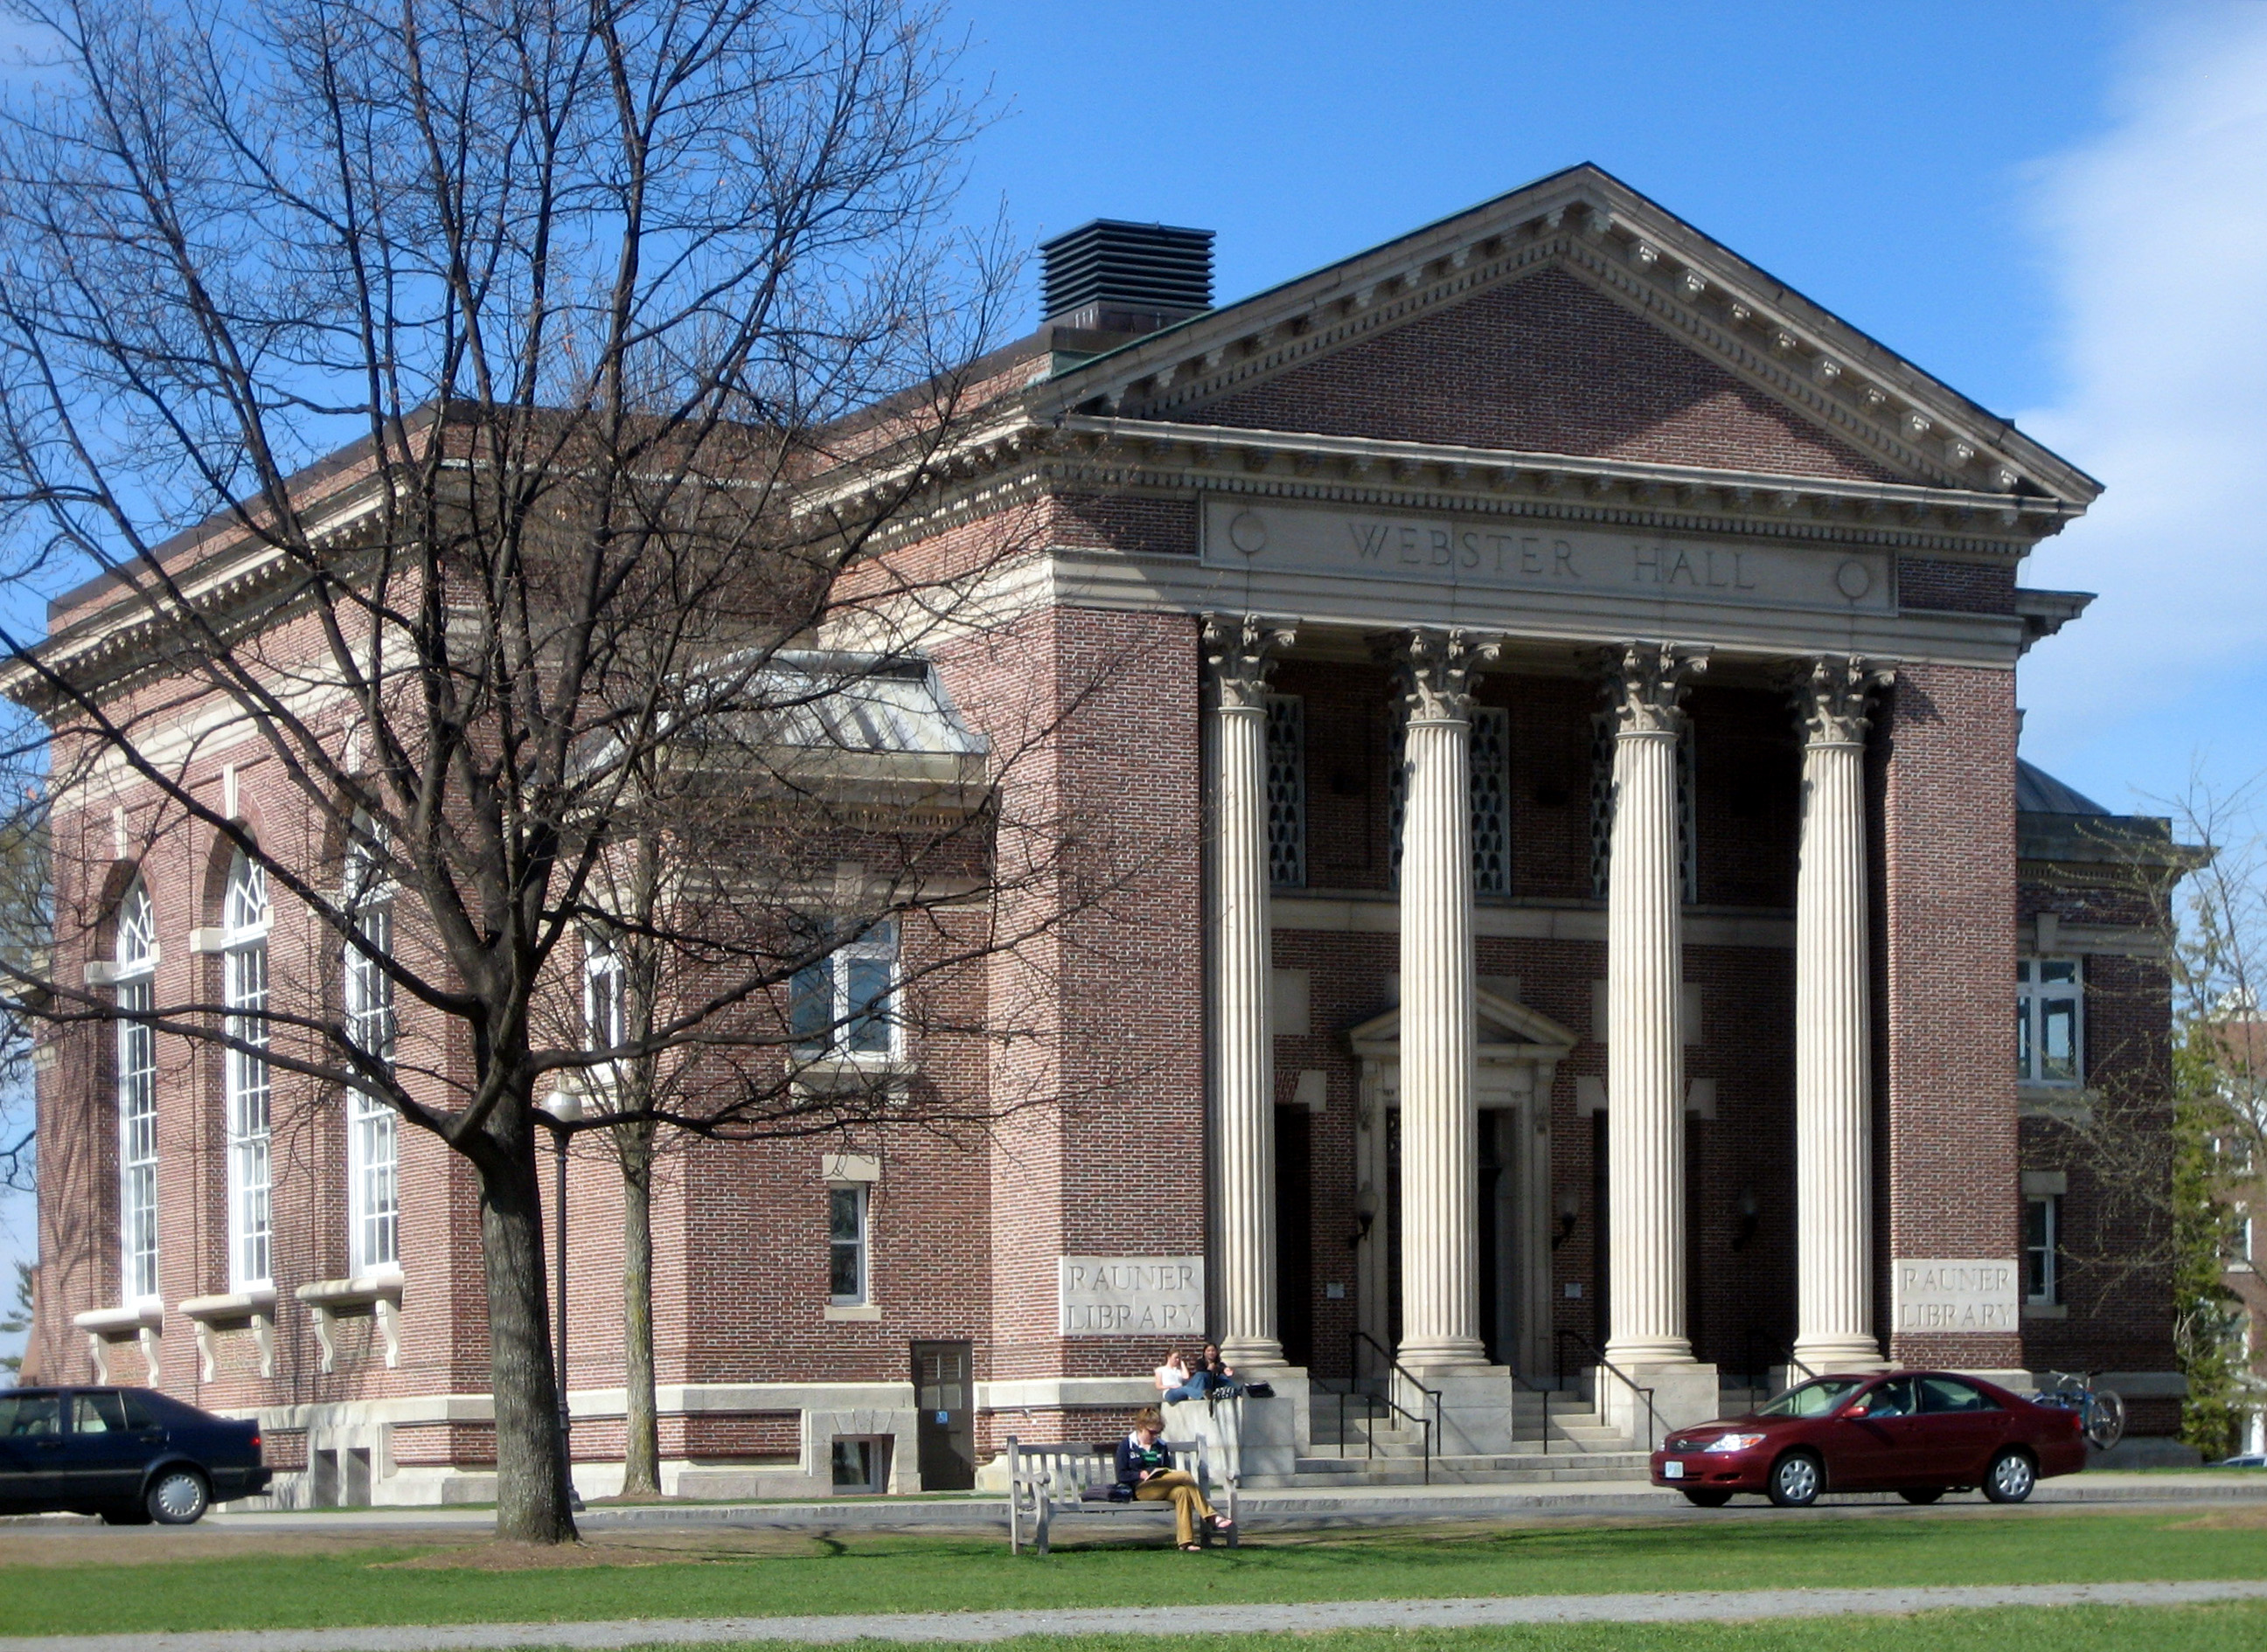 Webster Hall, at Dartmouth College, houses the Rauner Special Collections Library, which holds some of Webster's personal belongings and writings, including his beaver fur top hat and silk socks. Photo taken on May 2, 2007.